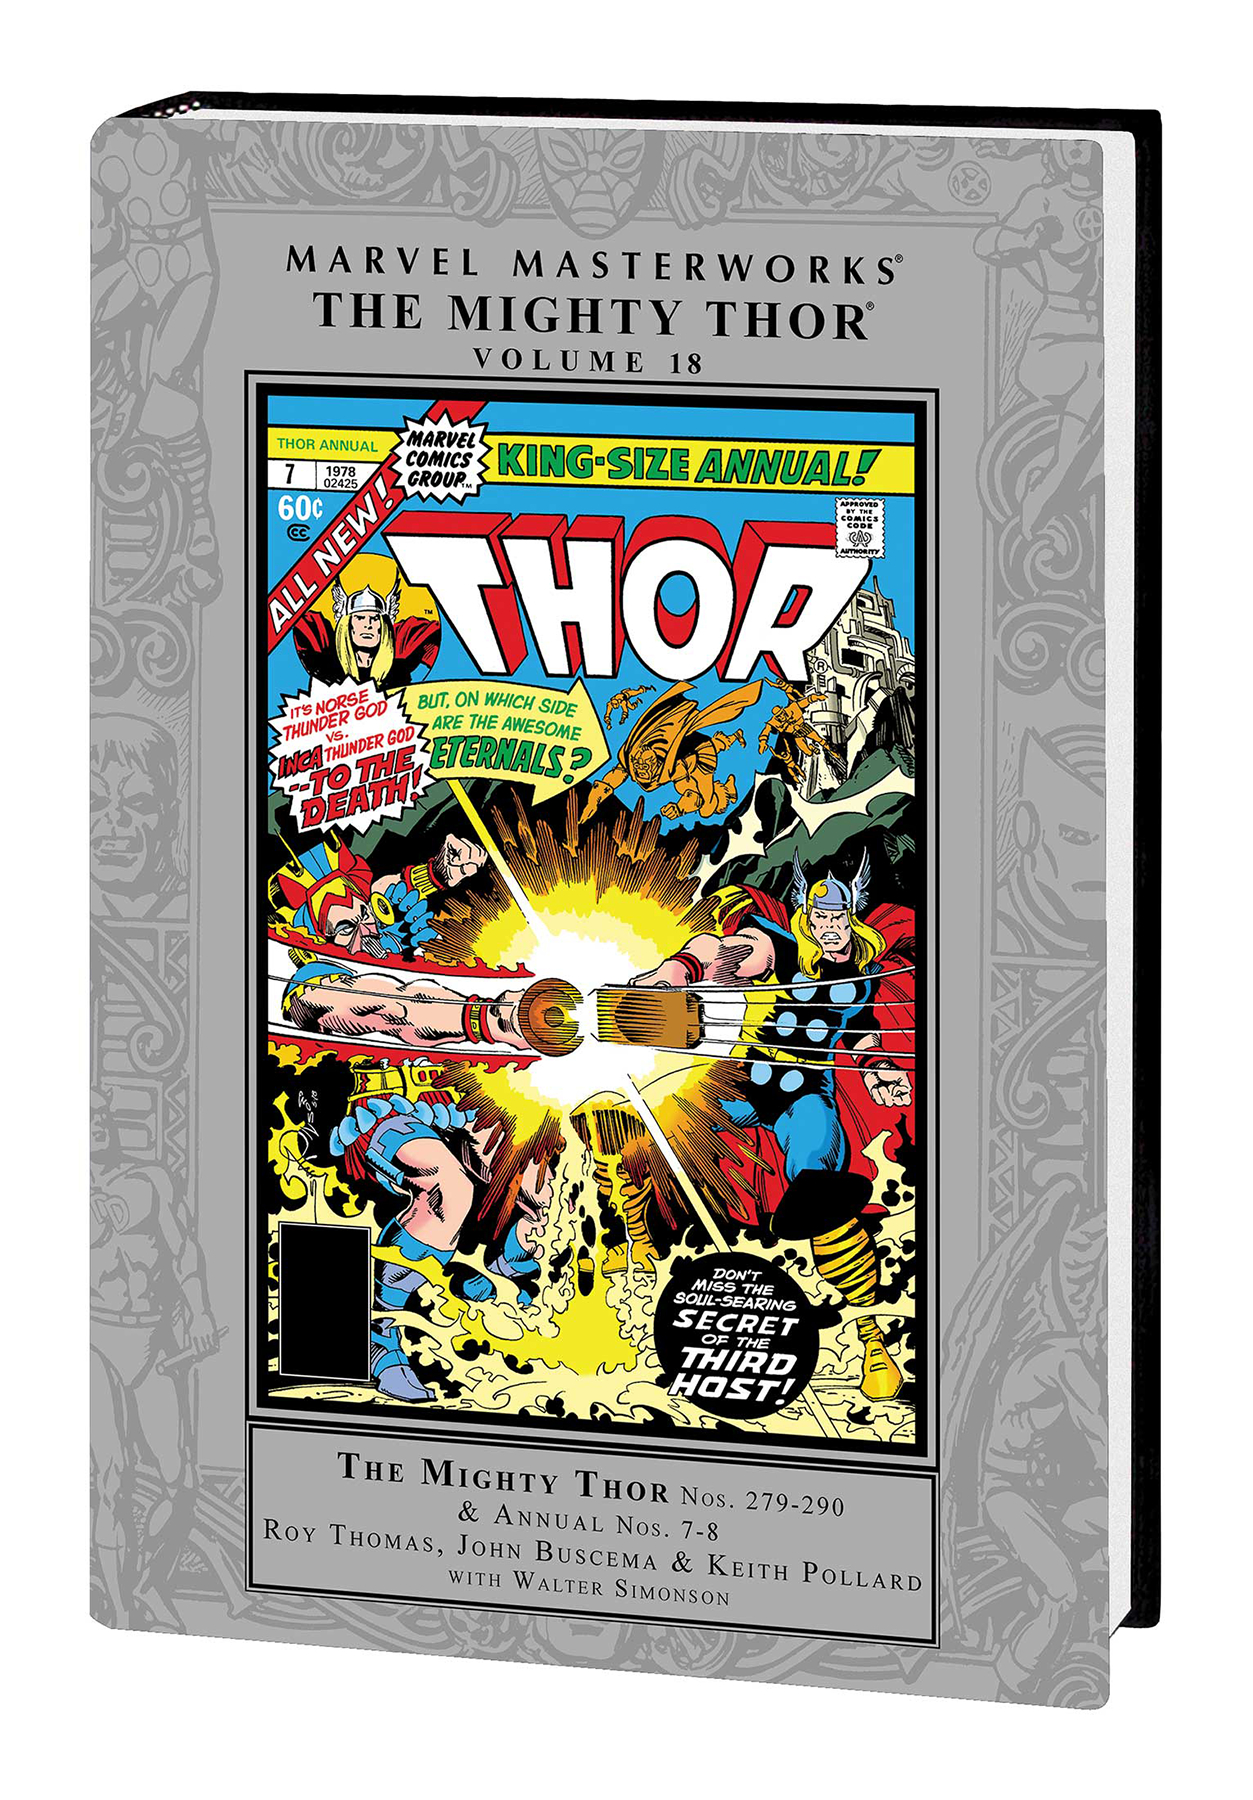 MMW MIGHTY THOR HC VOL 18